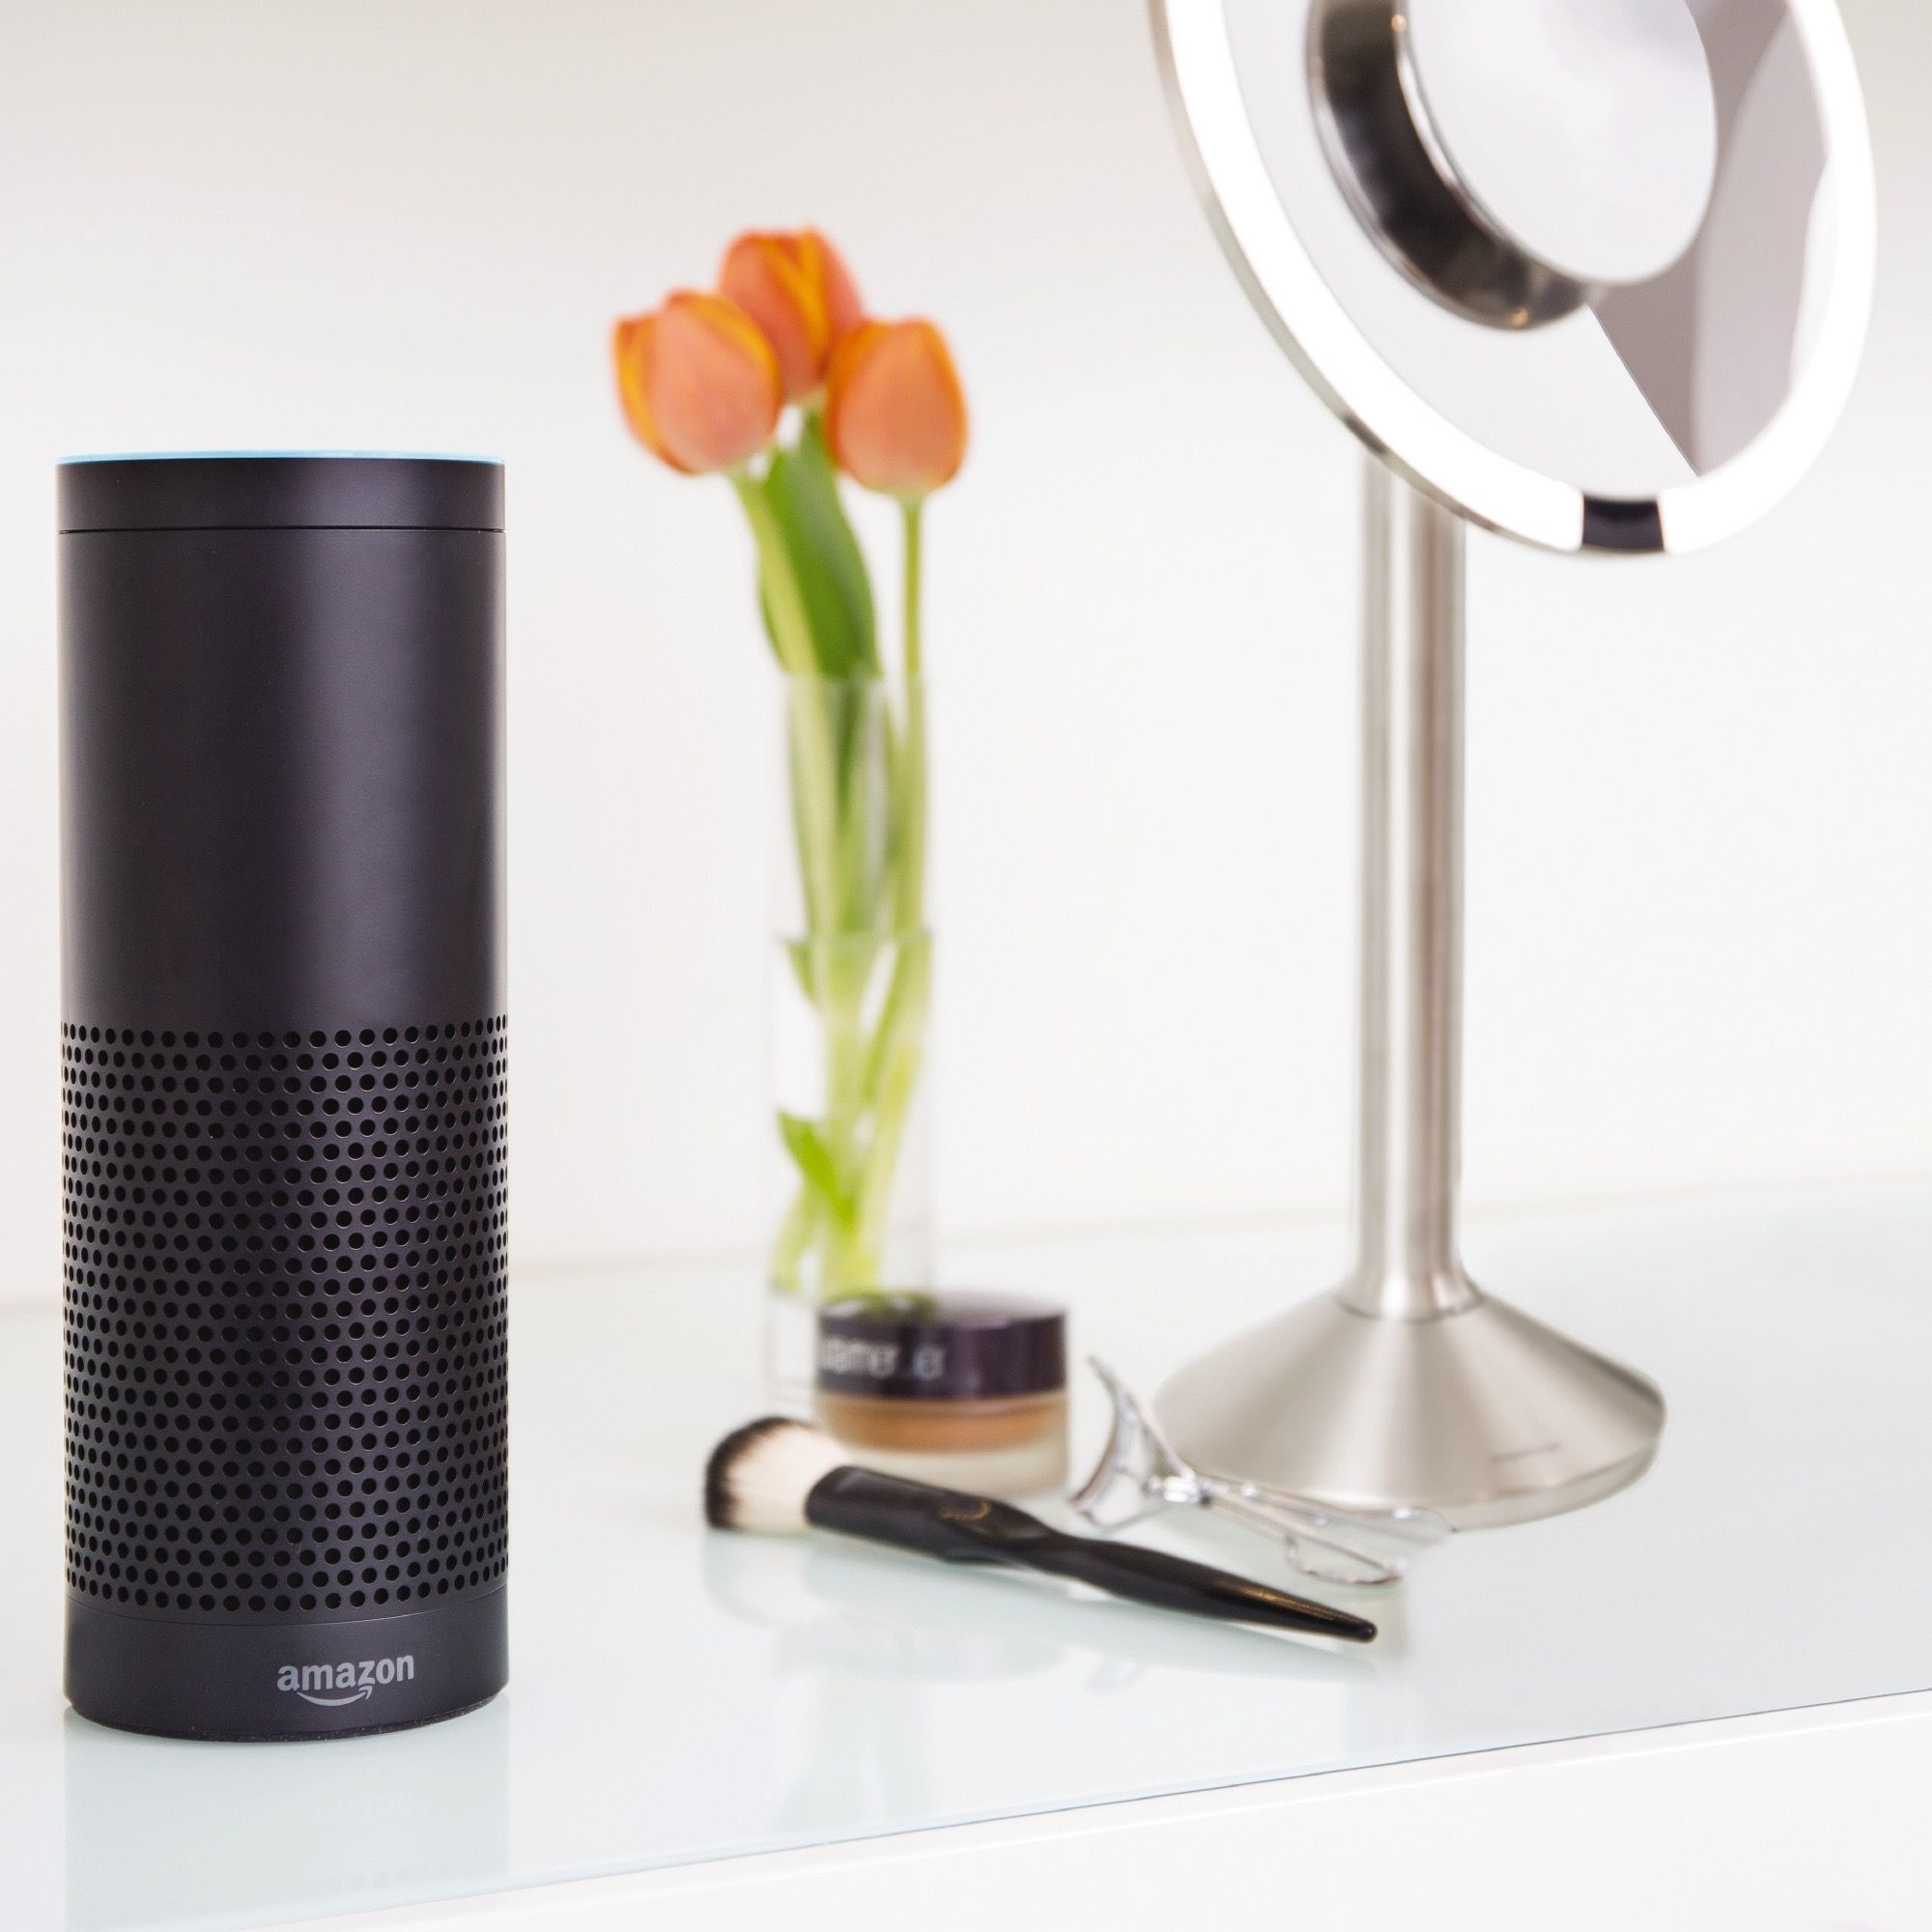 Bright vases trays dishes aroma lamps mirrors in beautiful frames -  Alexa Ask Sensor Mirror To Use The Office Setting Enable The Simplehuman